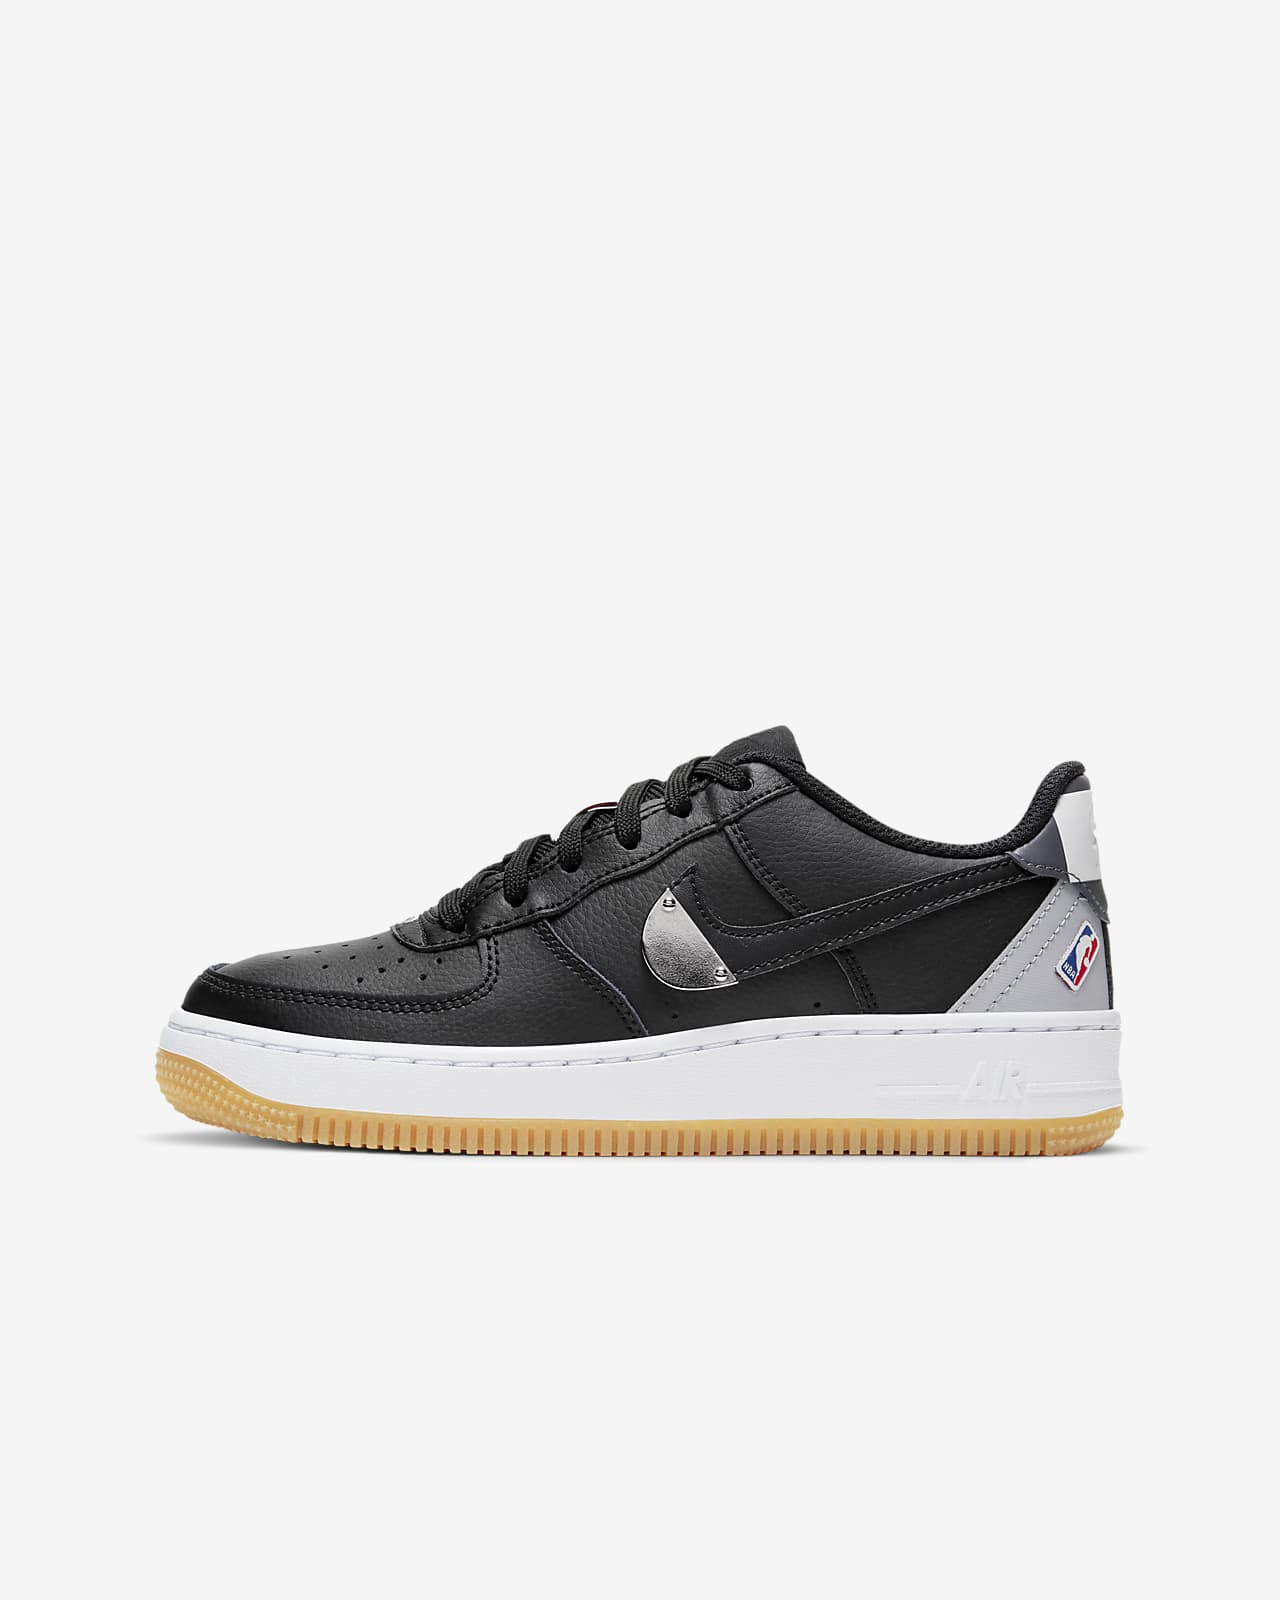 Nike Air Force 1 LV8 1 Zapatillas - Niño/a